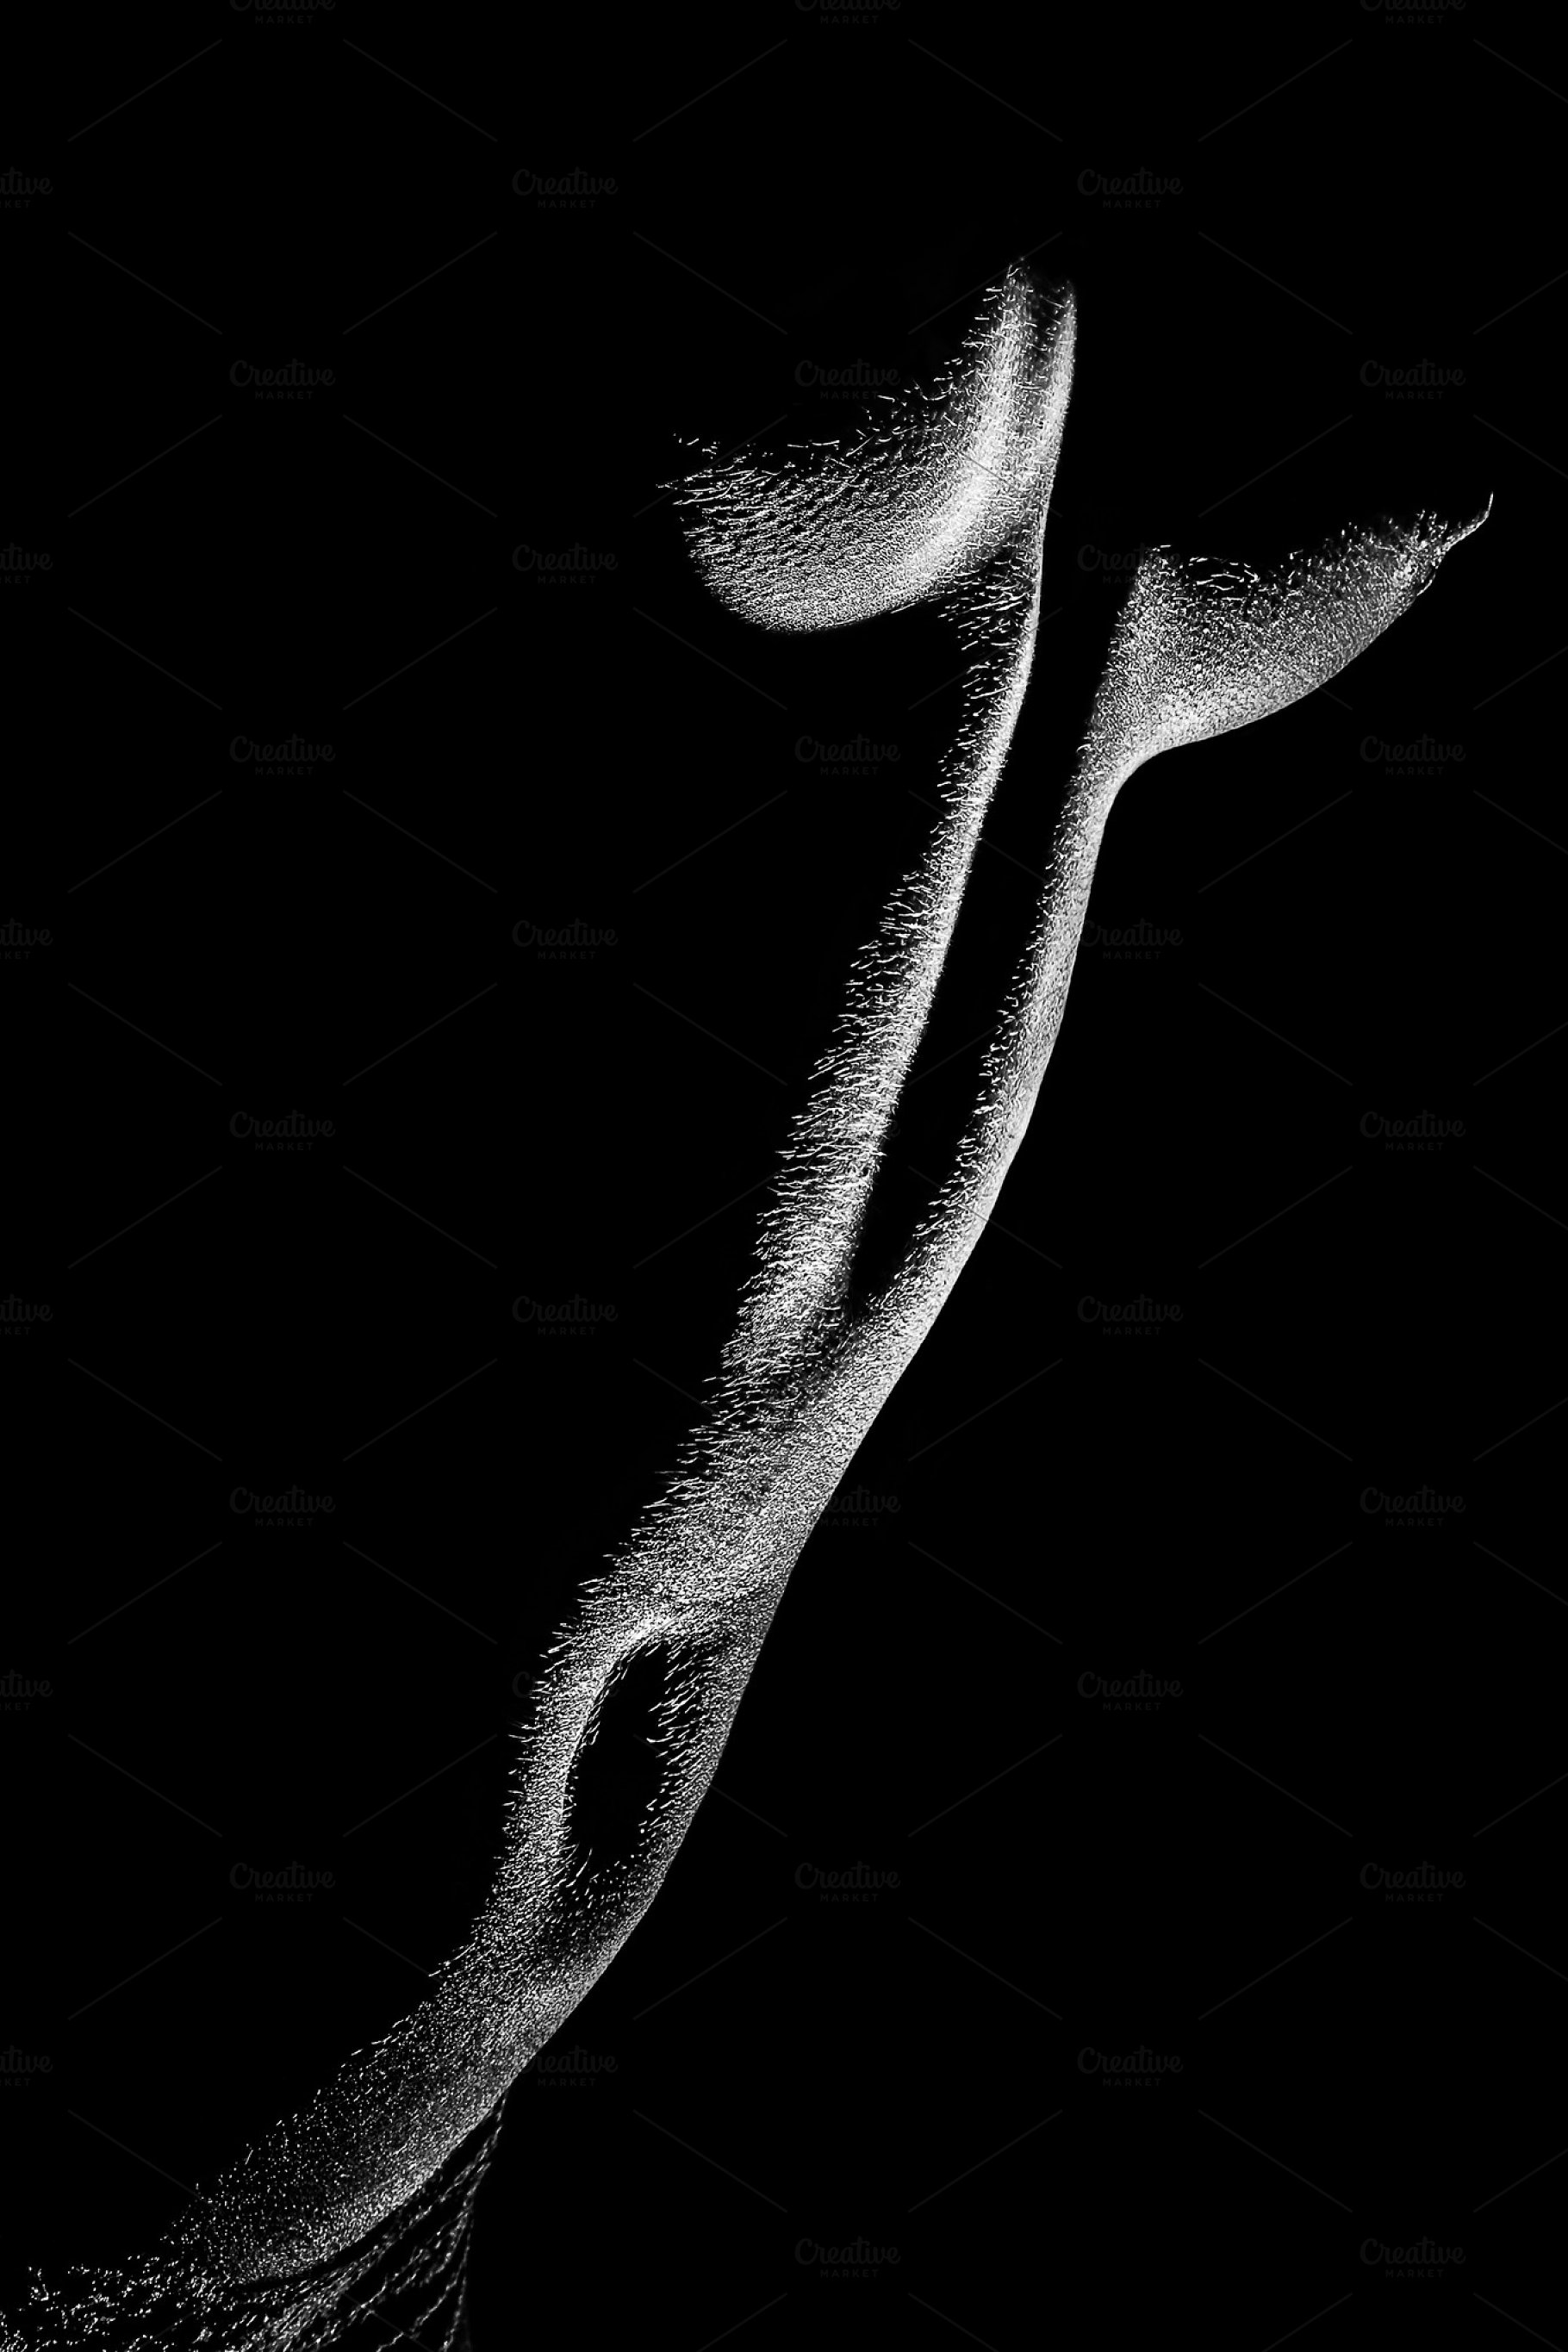 Naked woman body part bw